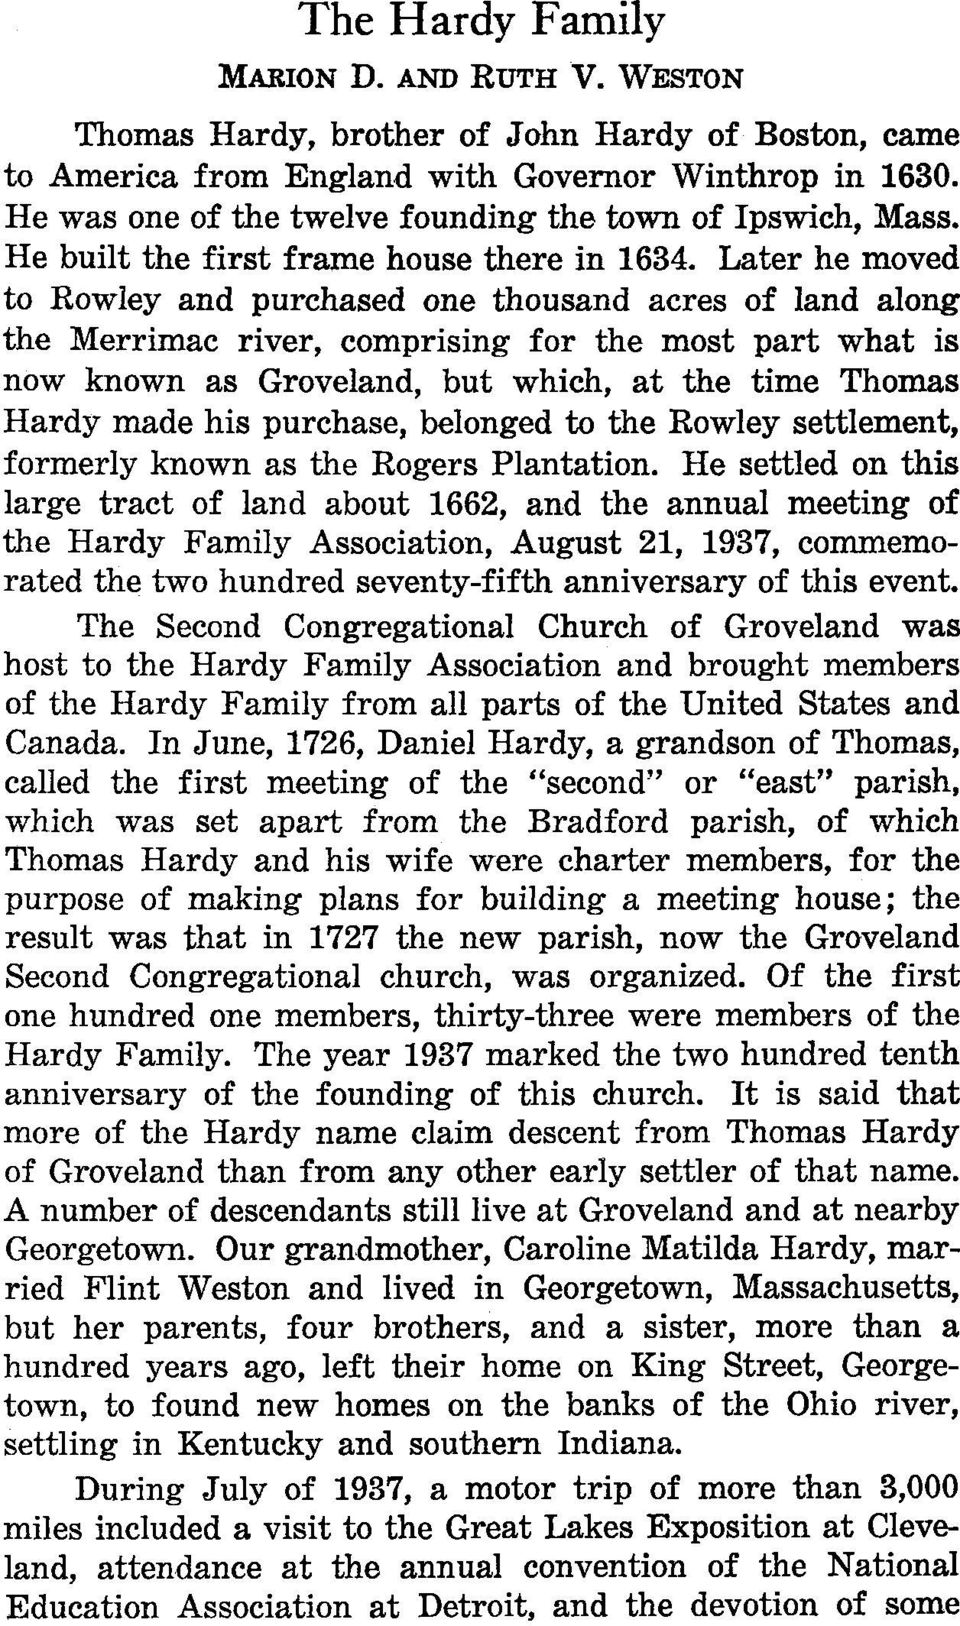 Later he moved to Rowley and purchased one thousand acres of land along the Merrimac river, comprising for the most part what is now known as Groveland, but which, at the time Thomas Hardy made his